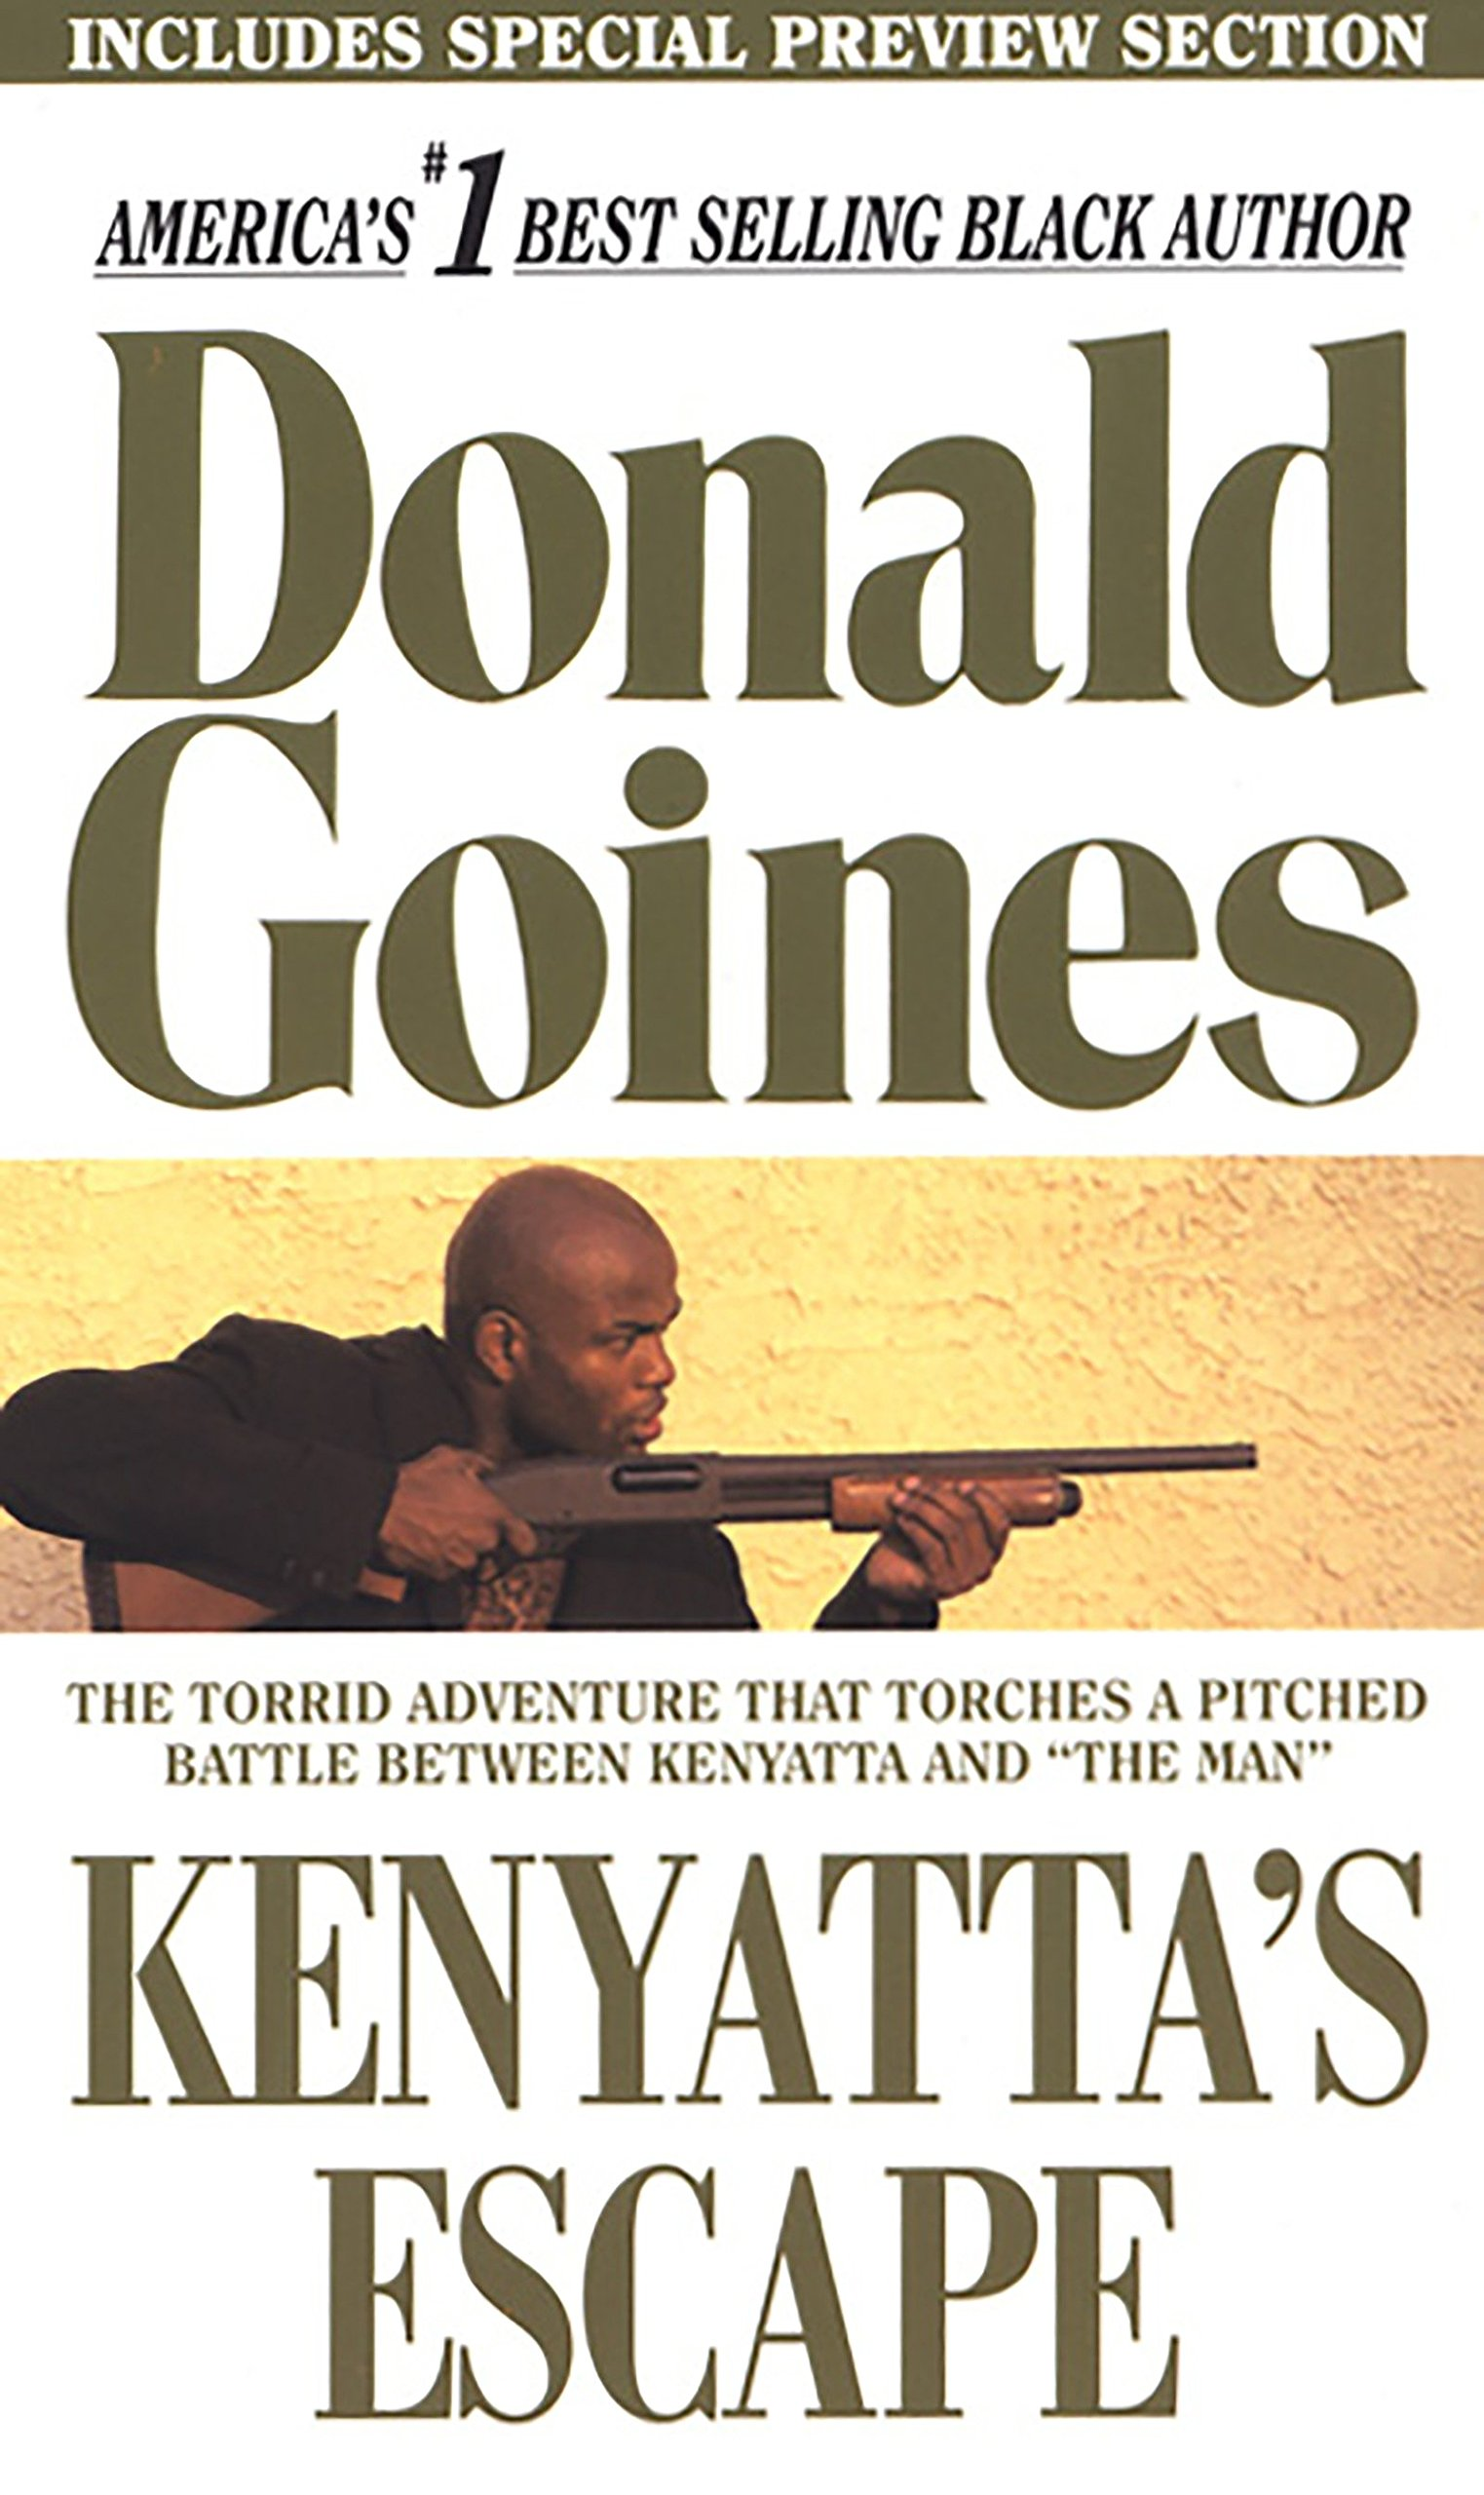 KENYATTA'S ESCAPE (Holloway House Originals): Amazon.co.uk: Donald Goines:  9780870678837: Books